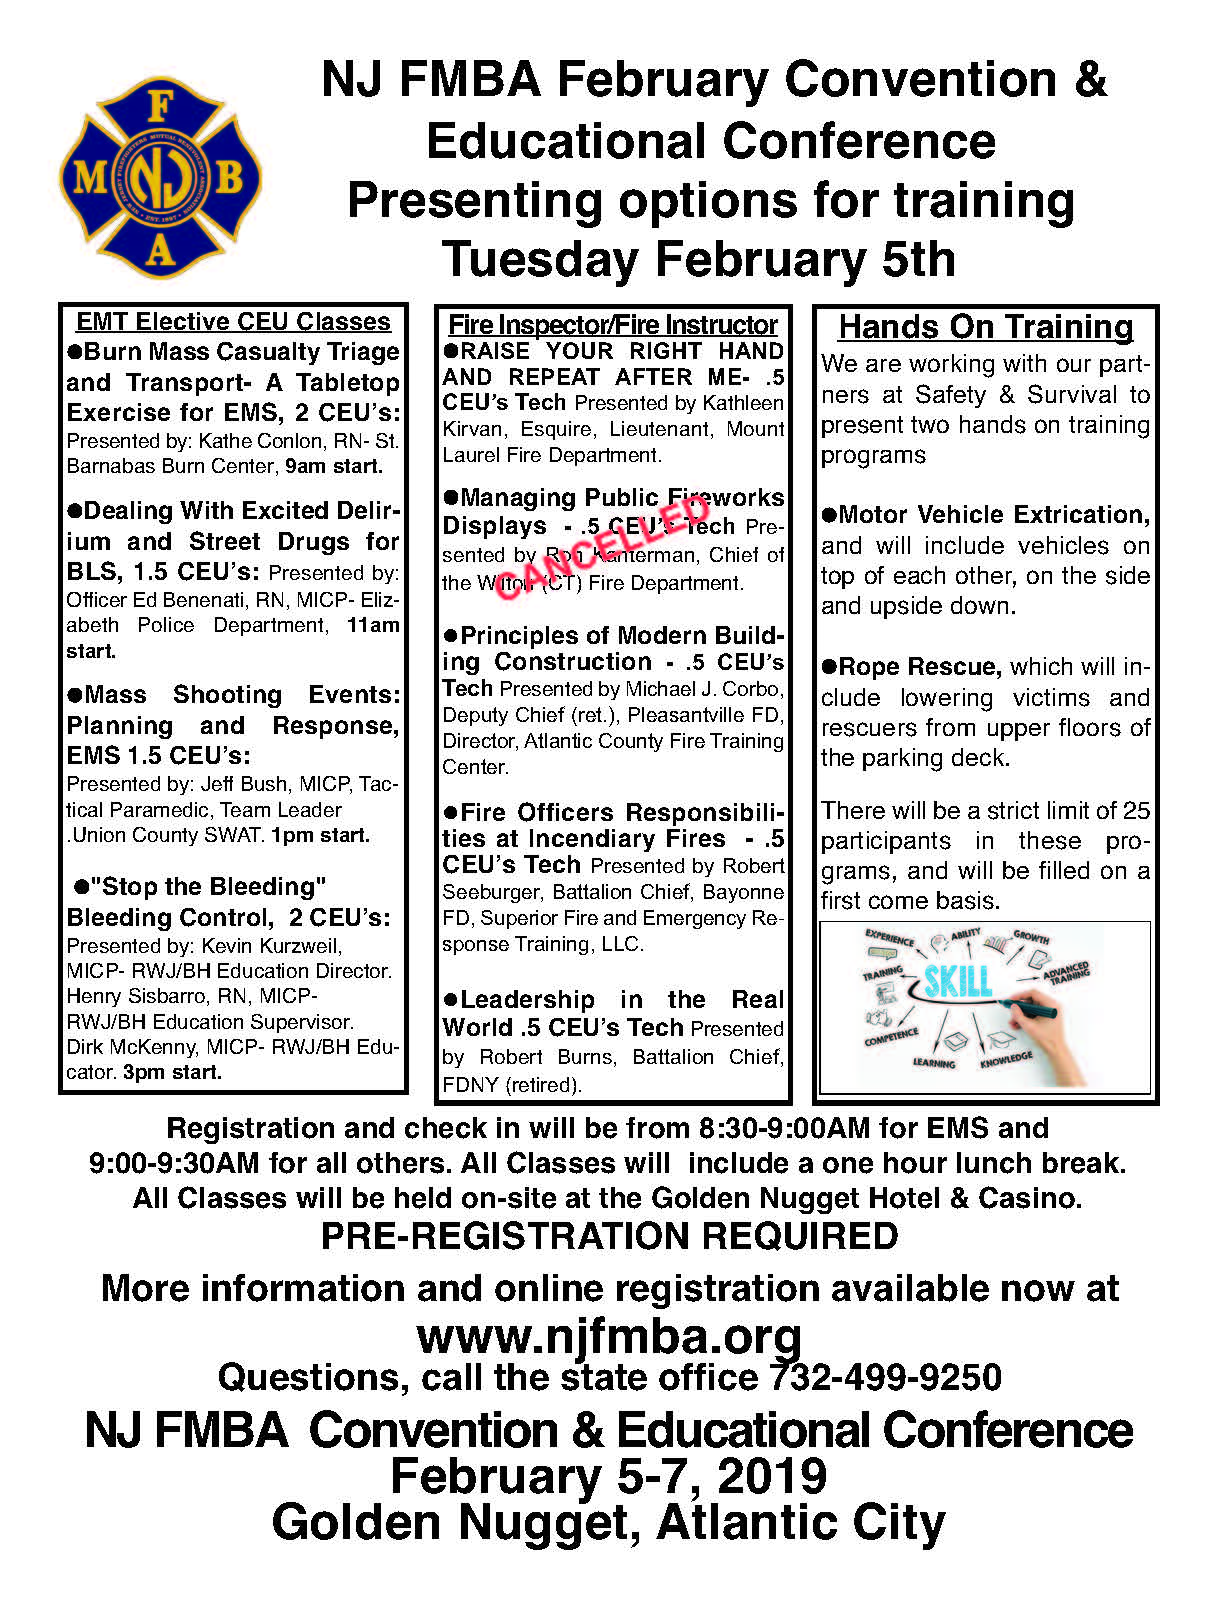 NJ FMBA February Mid-Year Convention and Educational